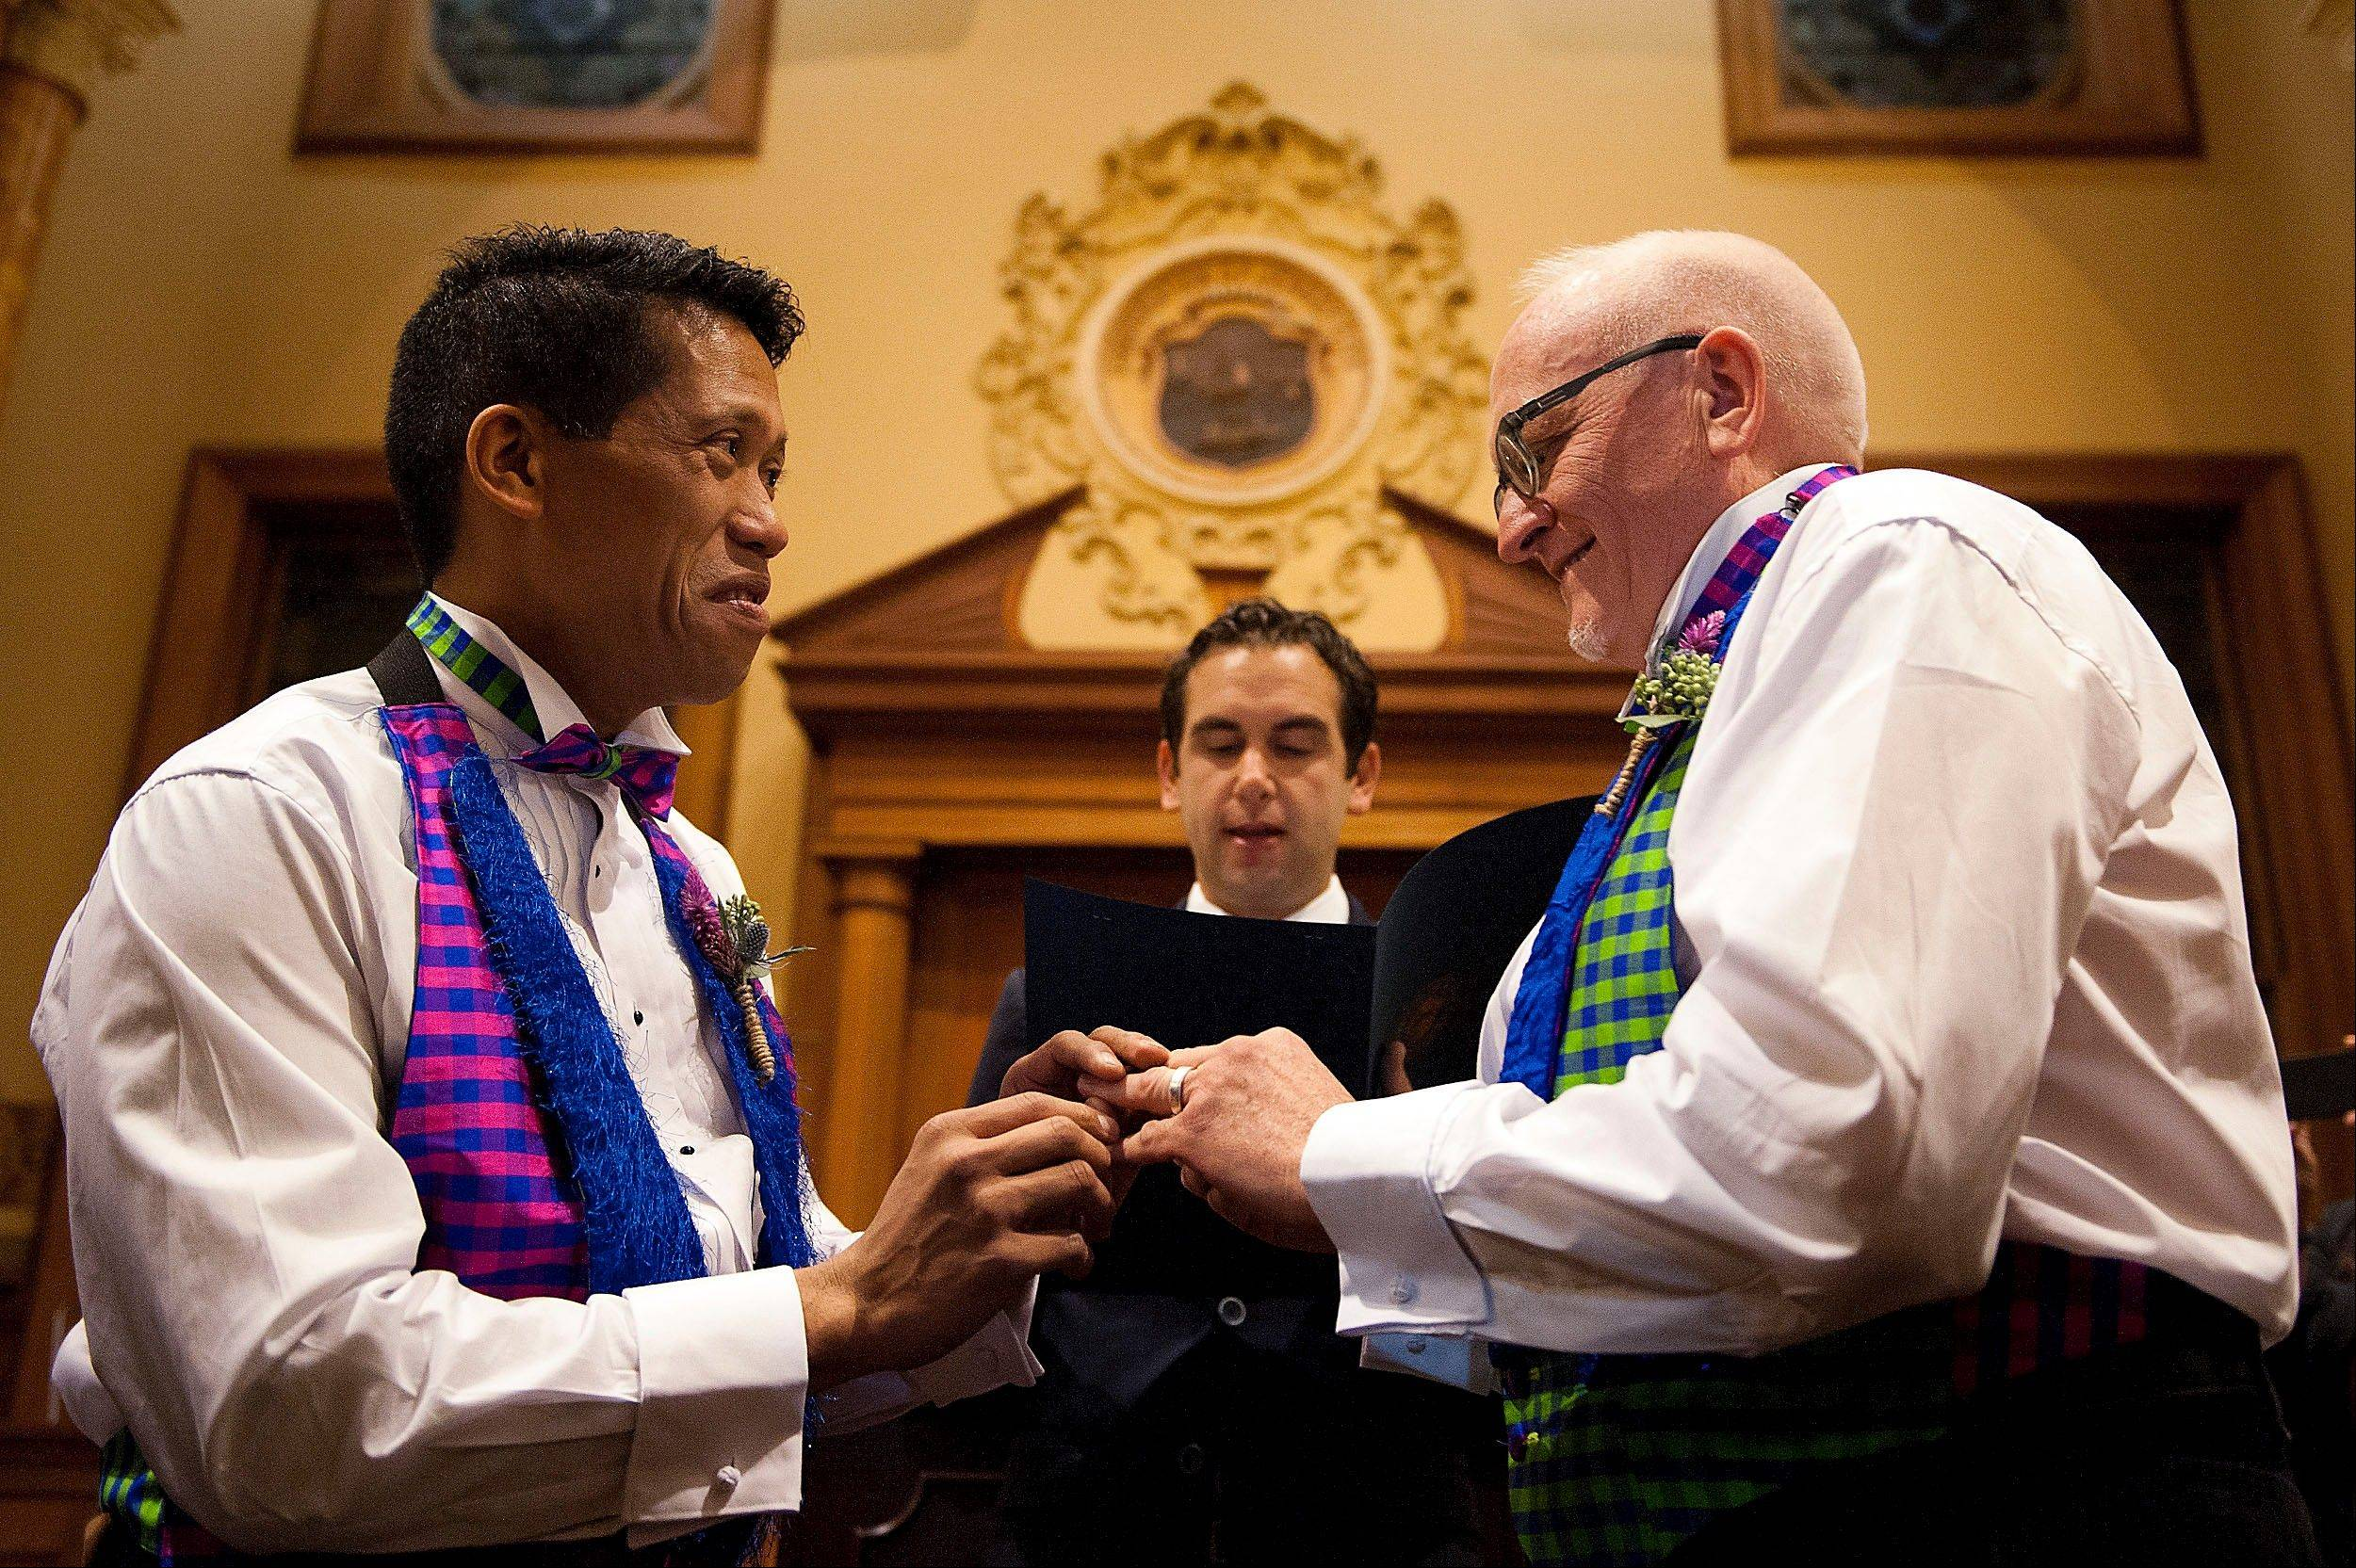 David Gibson, right, and Richard Kiamco of Jersey City make history as they become the first official same-sex couple to be married in Jersey City in a ceremony officiated by Mayor Steve Fulop at 12:01 a.m. Monday at City Hall. Seven other gay couples also participated in the ceremony.